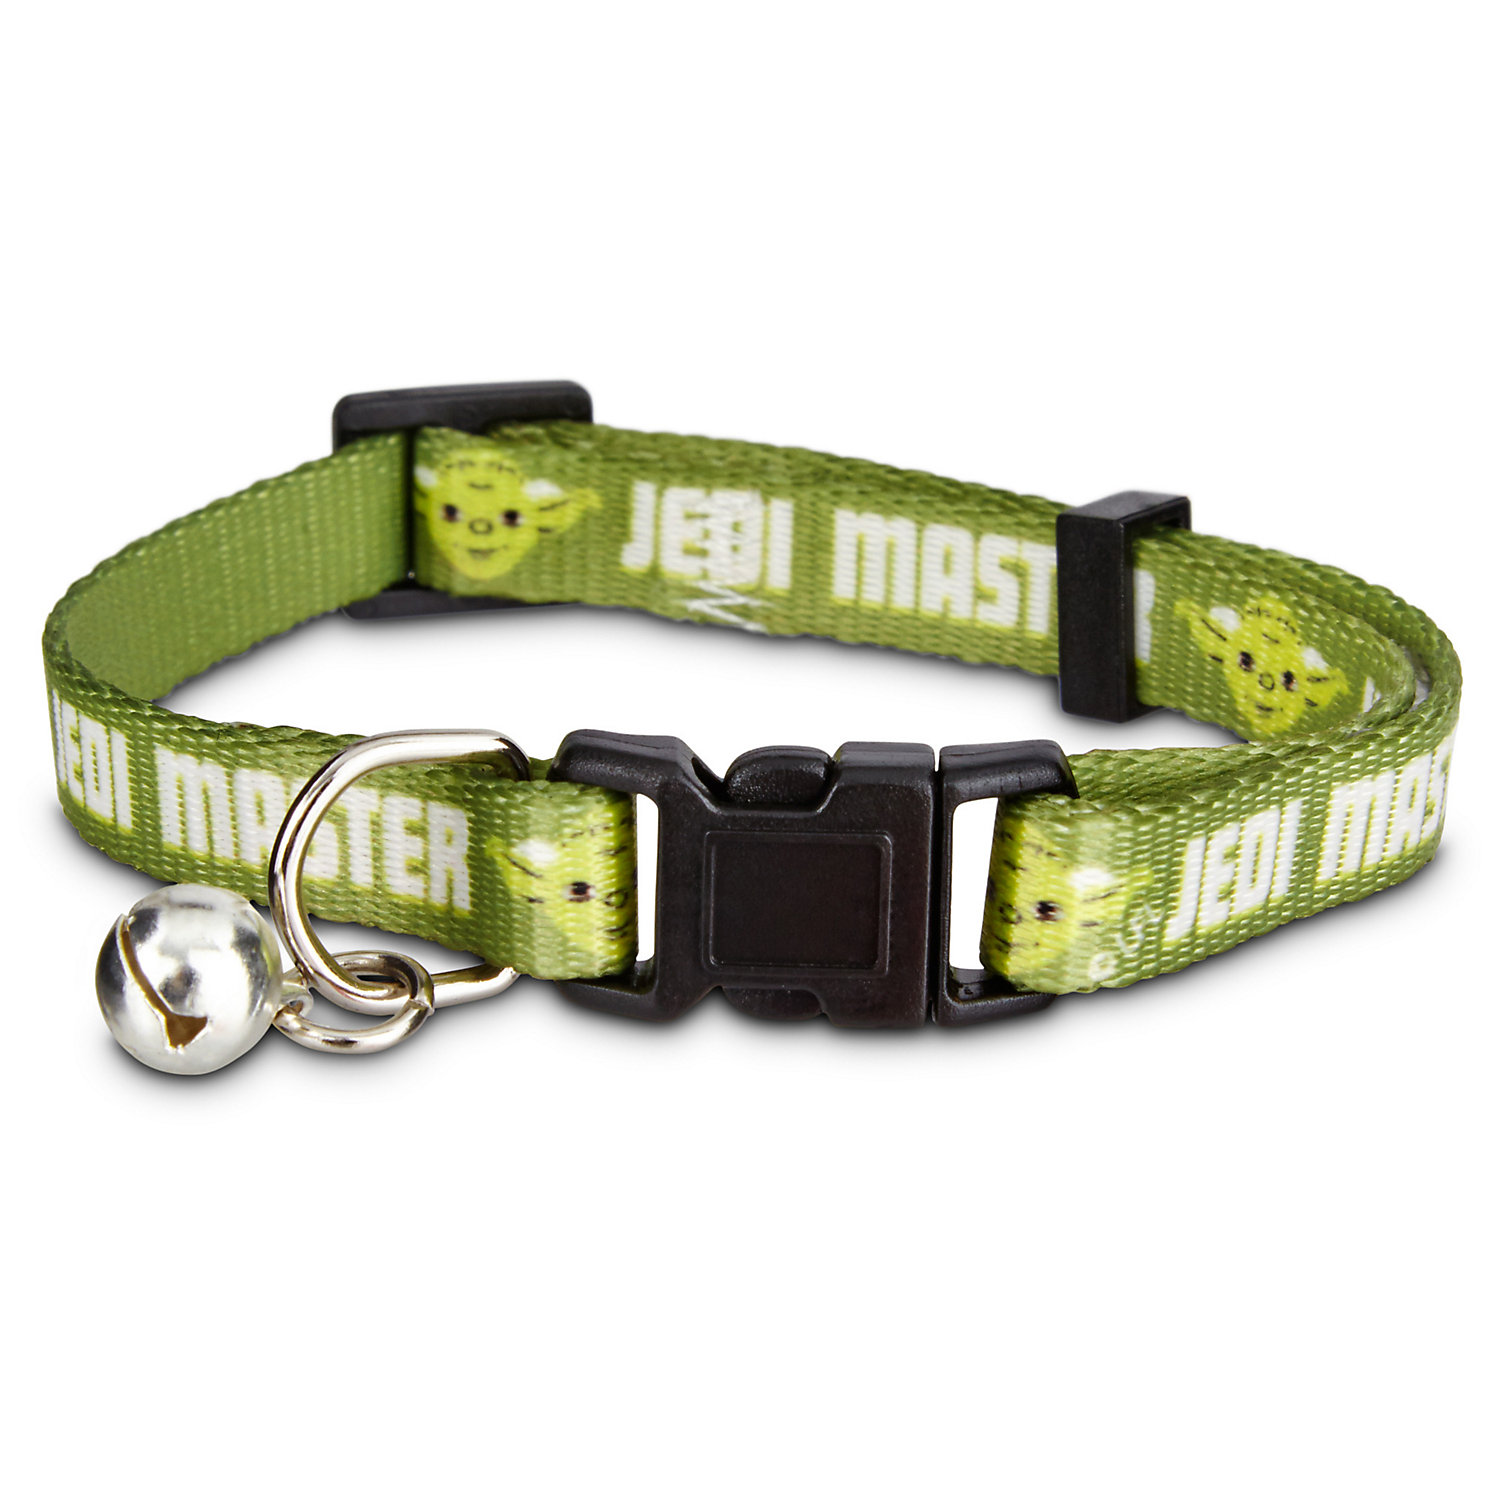 Star Wars Jedi Master Cat Collar For Necks 8 12 One Size Fits All Green